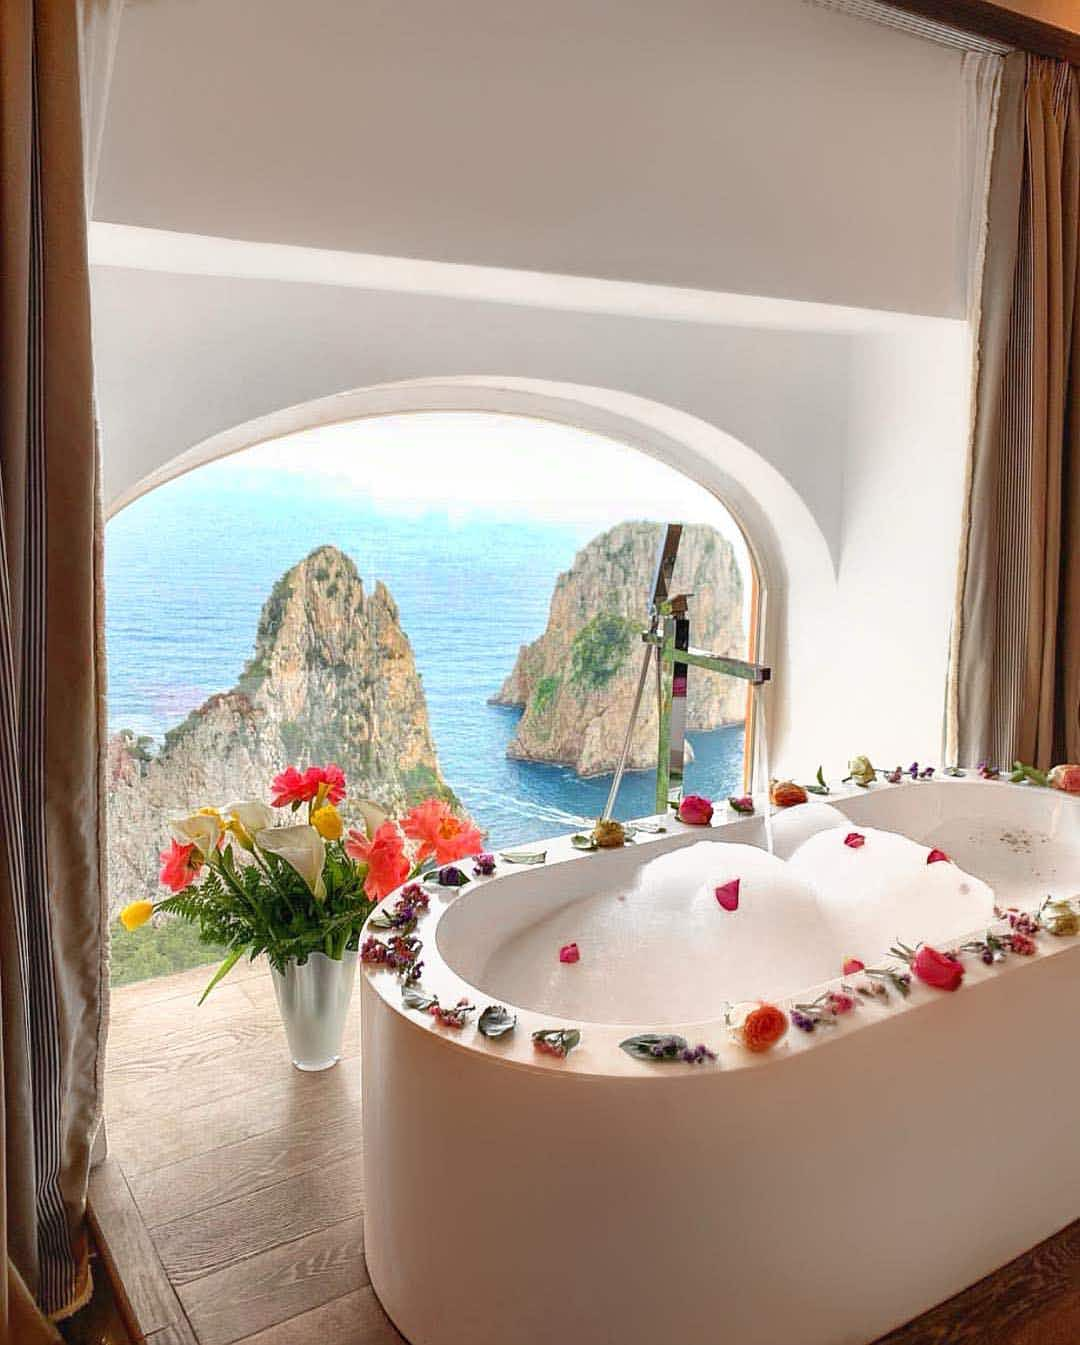 A white soaking tub filled with soap bubbles, with flower petals around the rim, in front of an arched window overlooking the water and rock formations, at Punta Tragara hotel